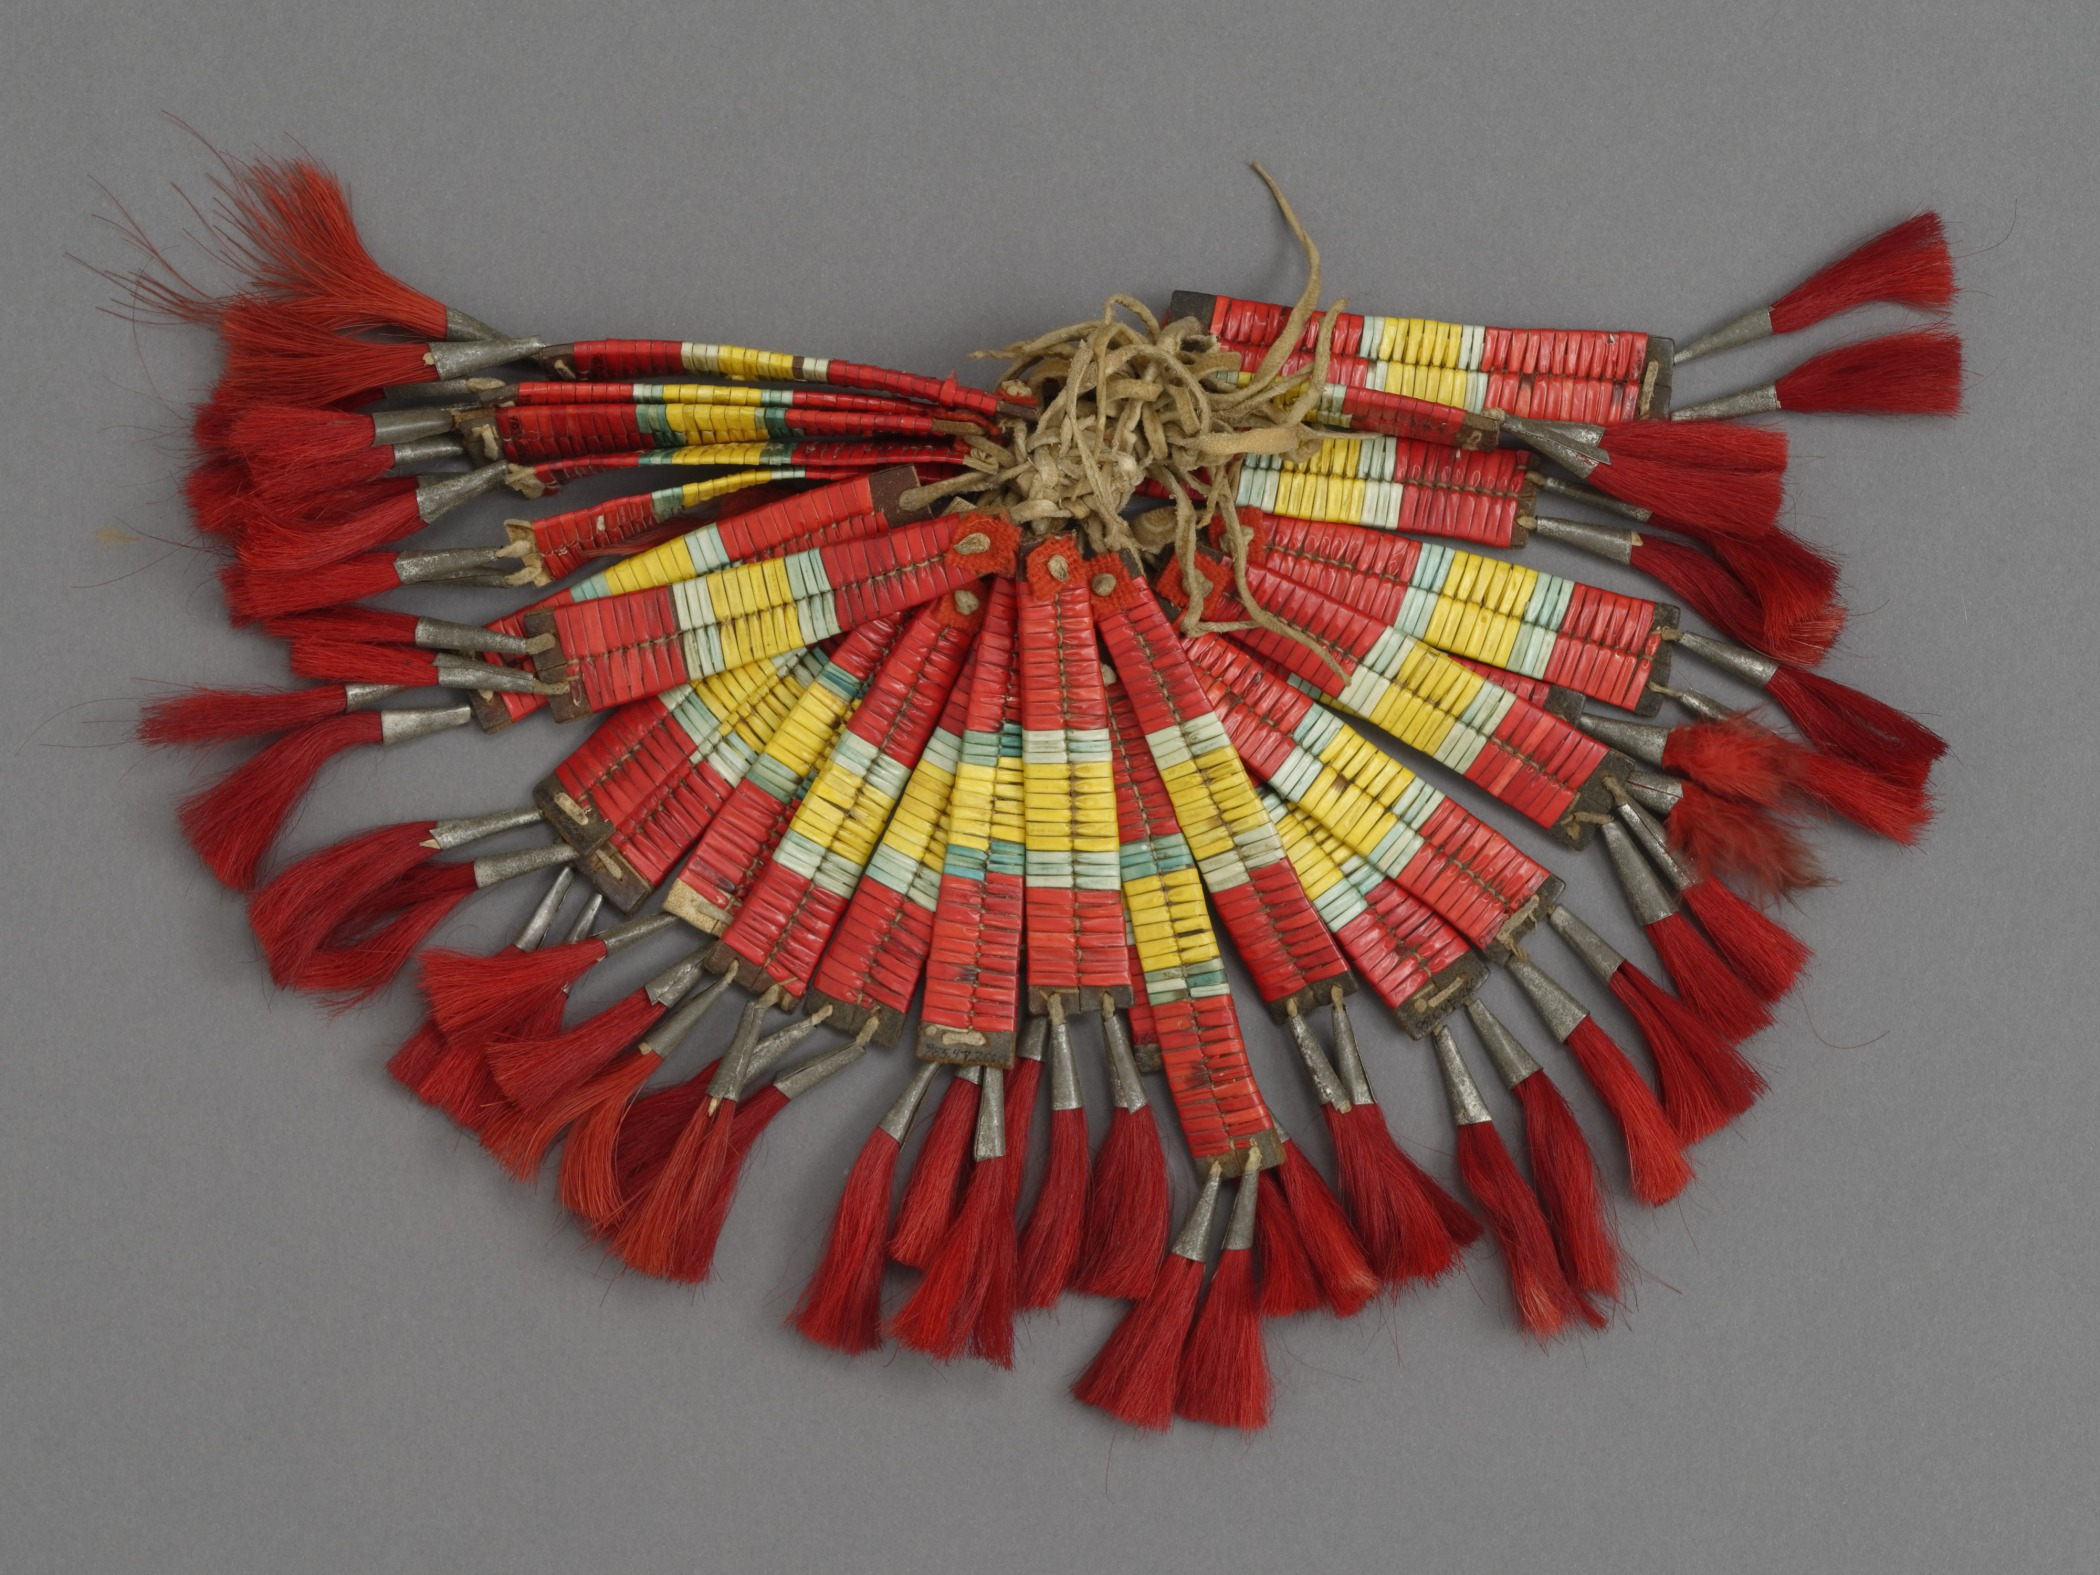 Unknown people (Plains), 26 tipi ornaments, early 20th century. Commercial leather, quills, metal, and horsehair, 5 7/8 × 13/16 in. Hood Museum of Art, Dartmouth College: Gift of Guido R. Rahr, Sr., Class of 1951P; 985.47.26614.